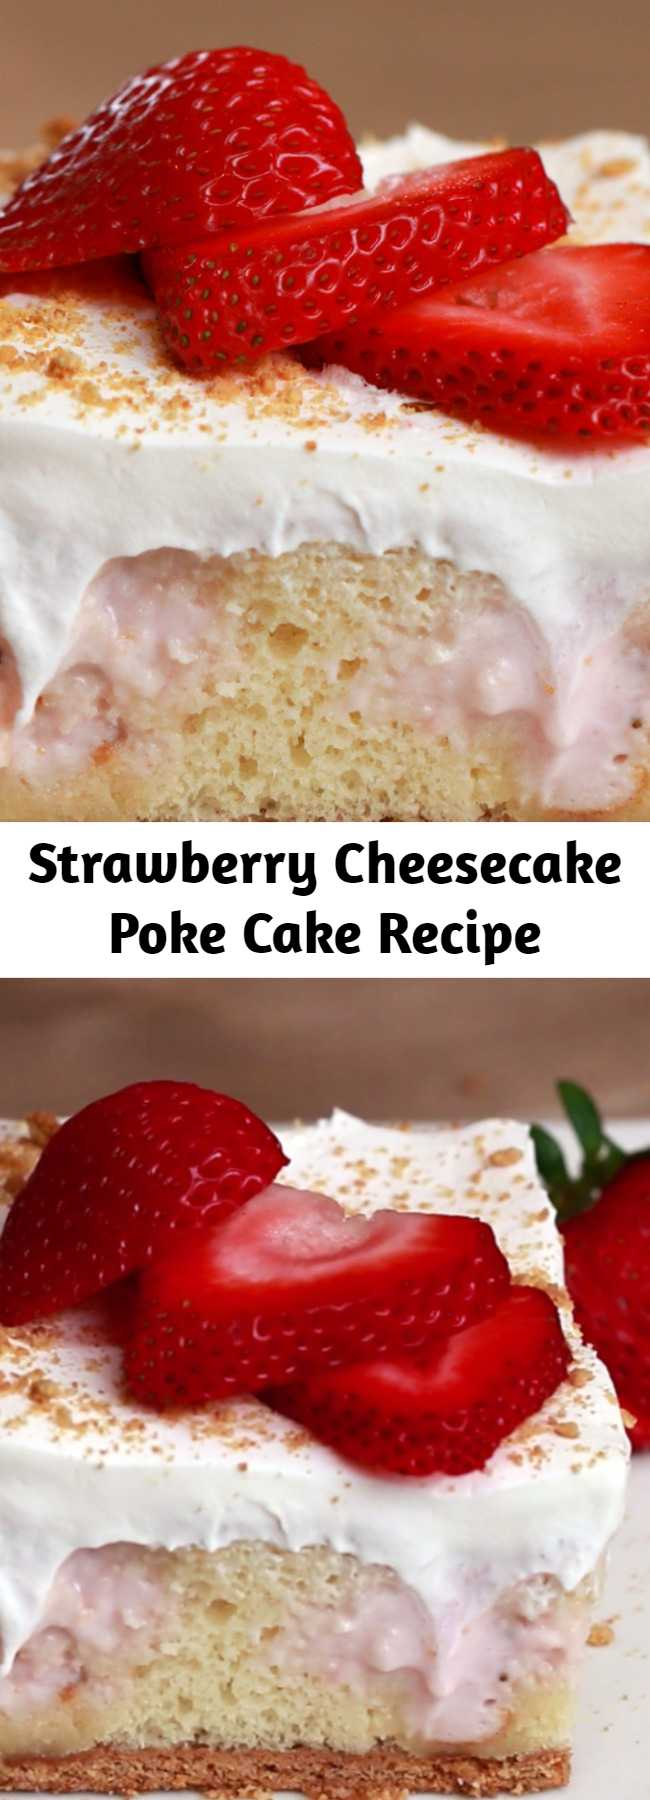 Strawberry Cheesecake Poke Cake Recipe - If you're stuck in a dessert rut, poke cake is just the recipe you need to try. It's low-maintenance to bake, and it's always a crowd pleaser. Poke holes using the back of a wooden spoon into a simple vanilla cake base, then cover the cake with a mixture of strawberries, cream cheese, and condensed milk. Once the cake is done chilling, it'll be filled with pockets of sweet berry deliciousness.